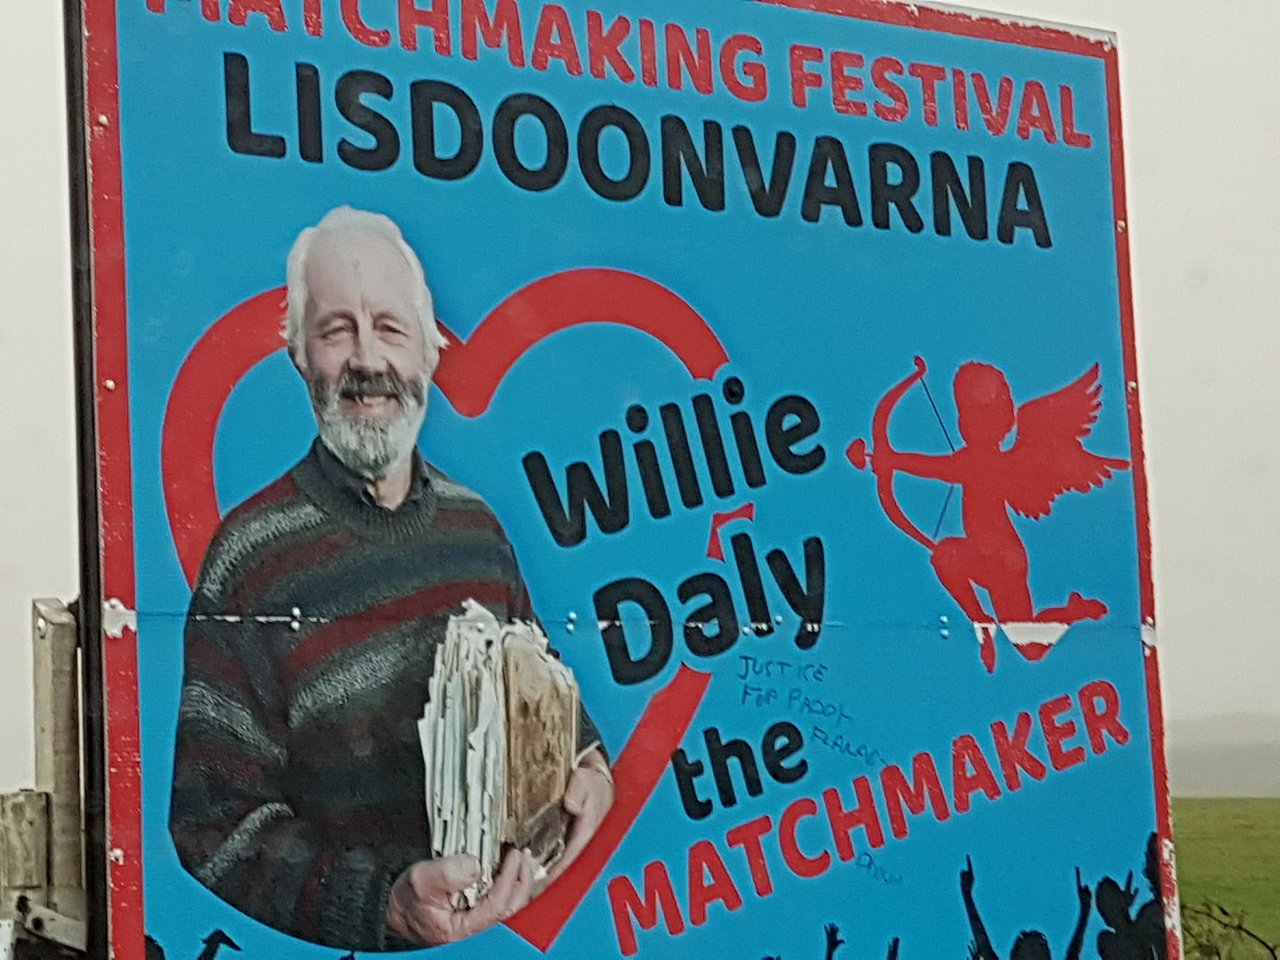 Lonely hearts long for trip to matchmaking weekend